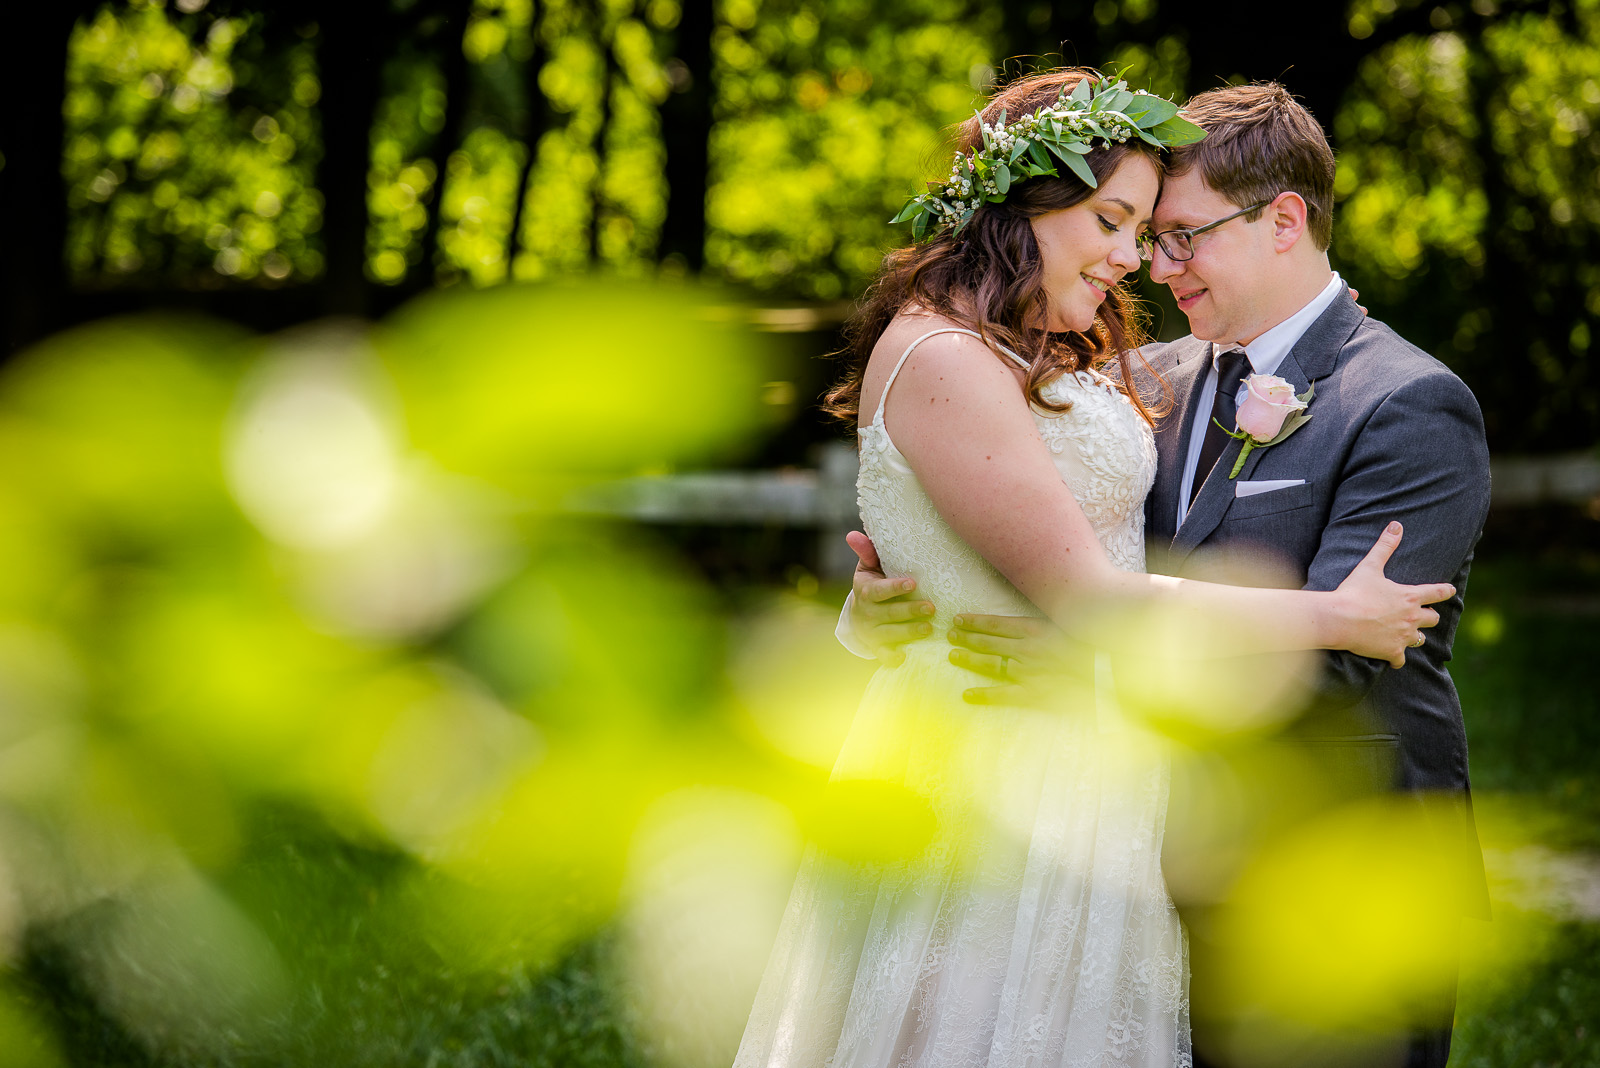 Eric_and_Christy_Photography_Blog_Wedding_Keara&Andy-31